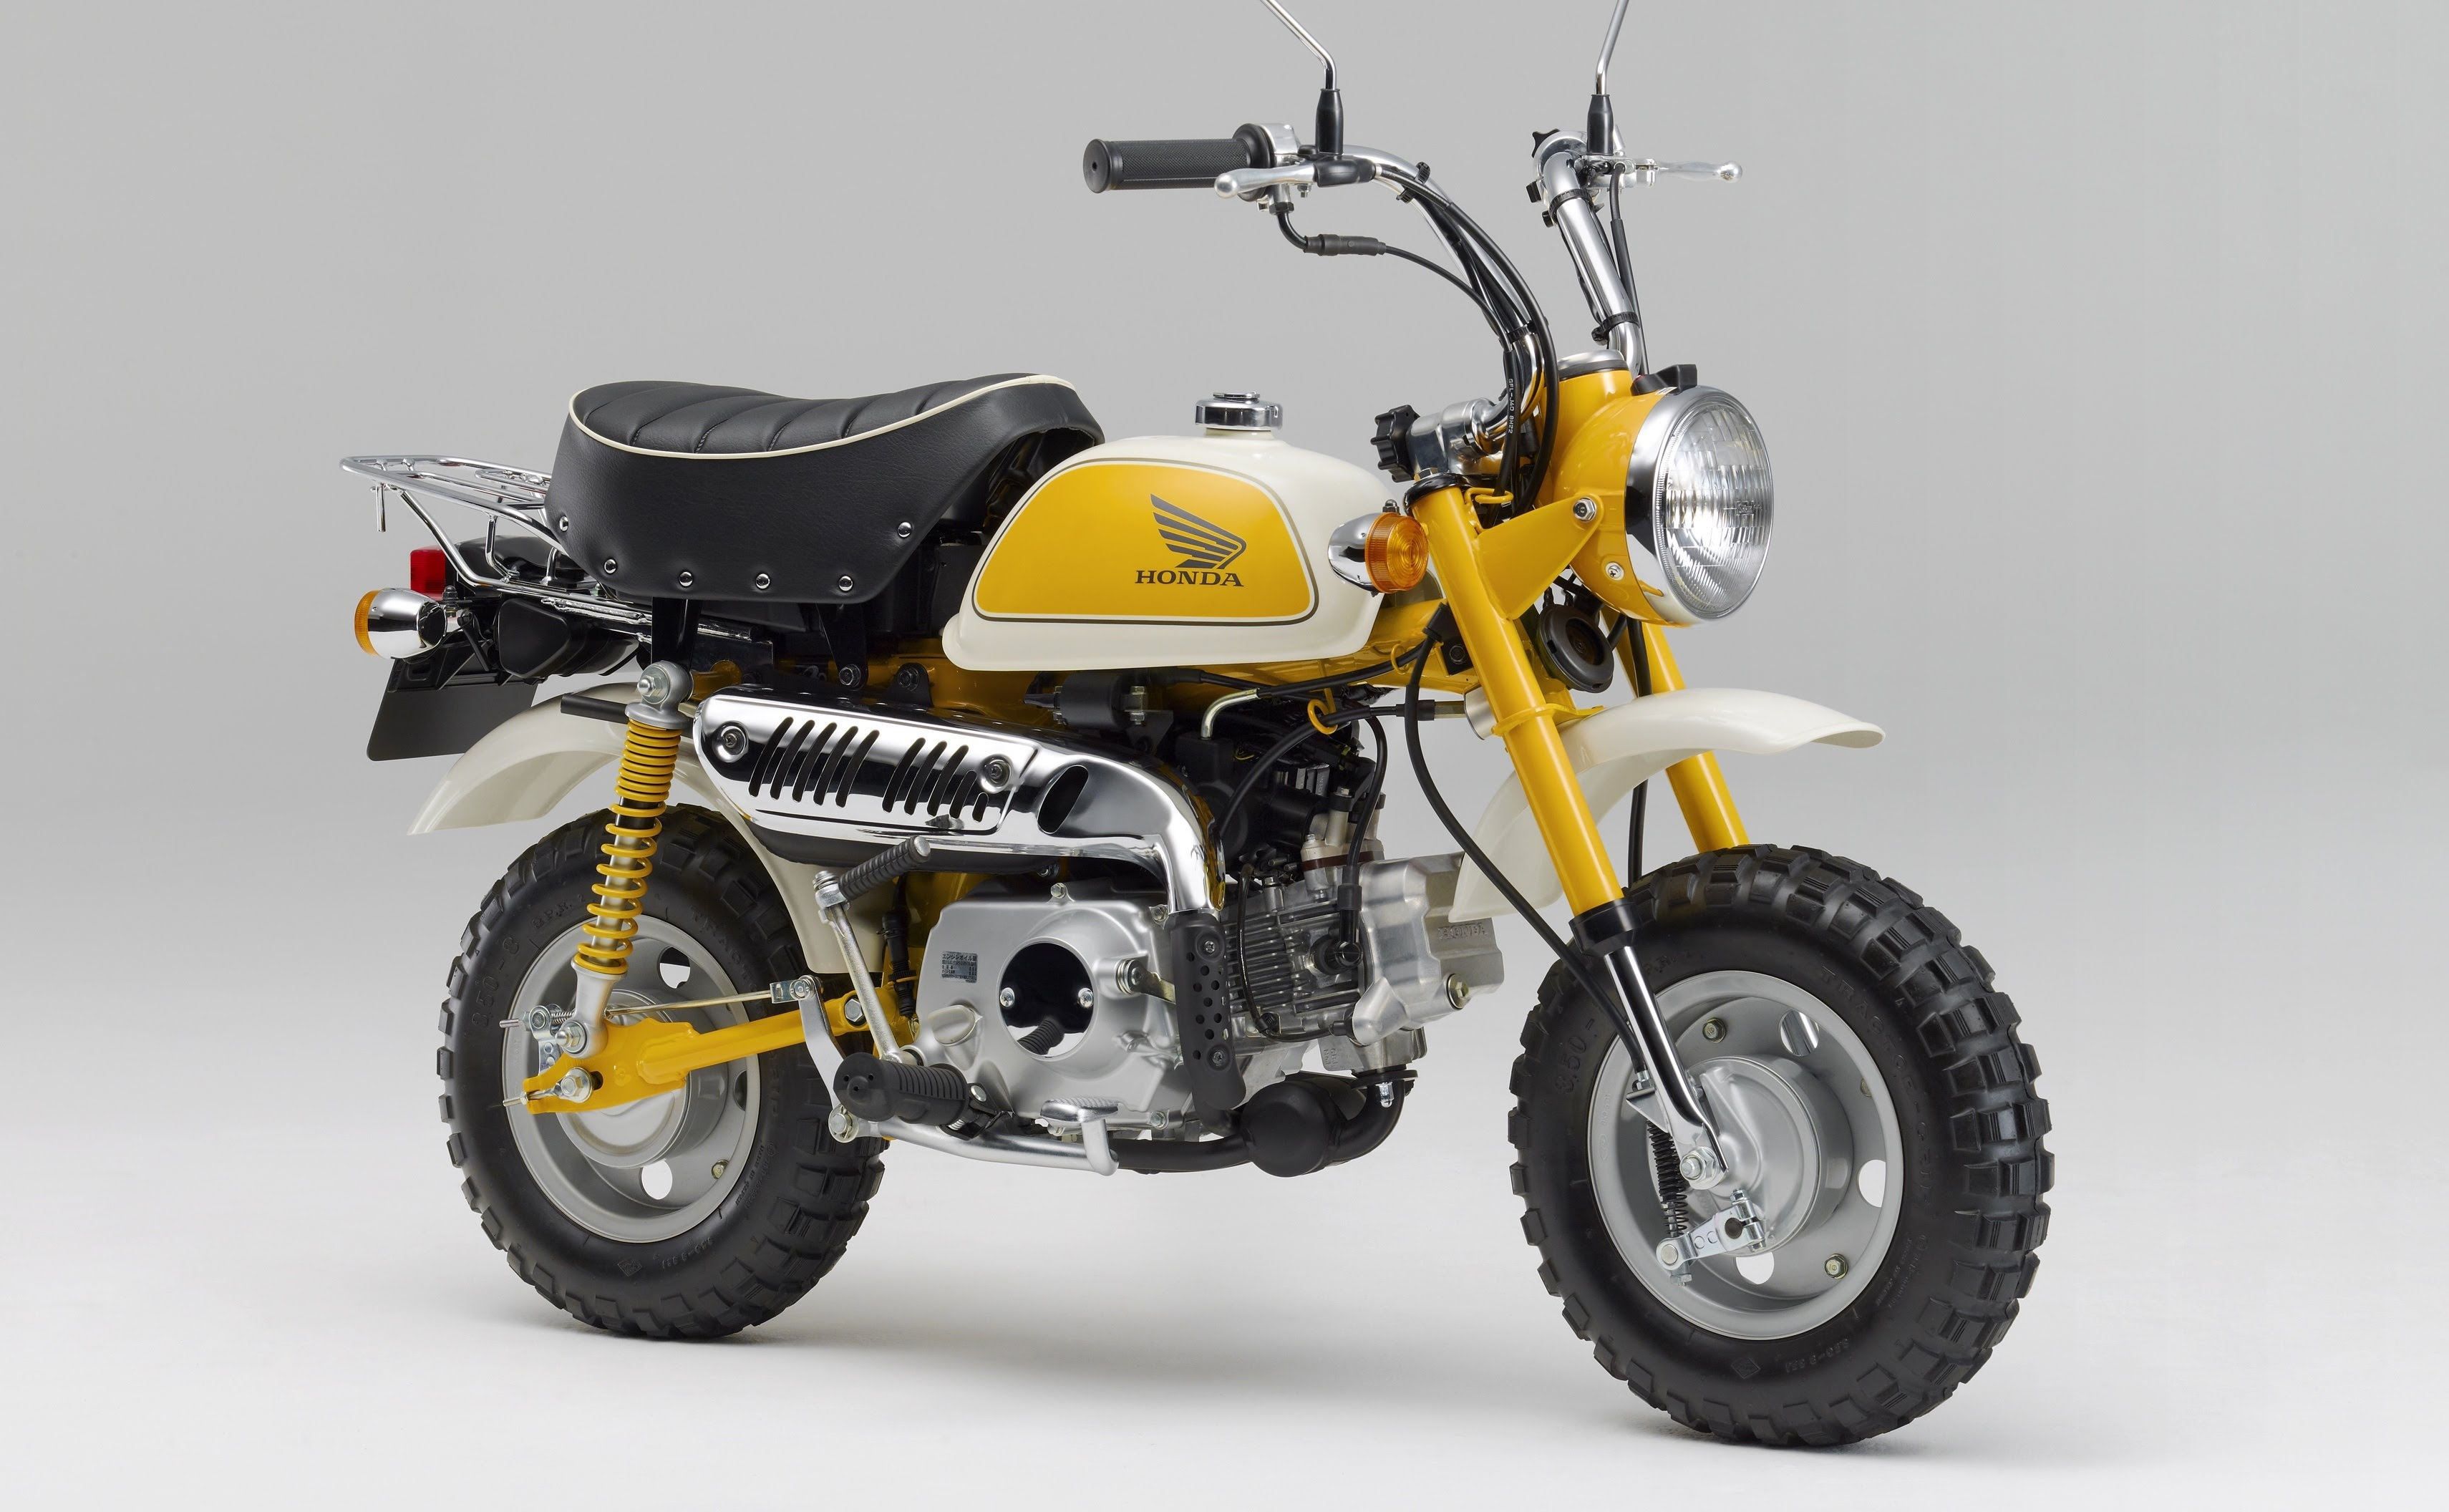 the evolution of the honda monkey bike honda ireland. Black Bedroom Furniture Sets. Home Design Ideas